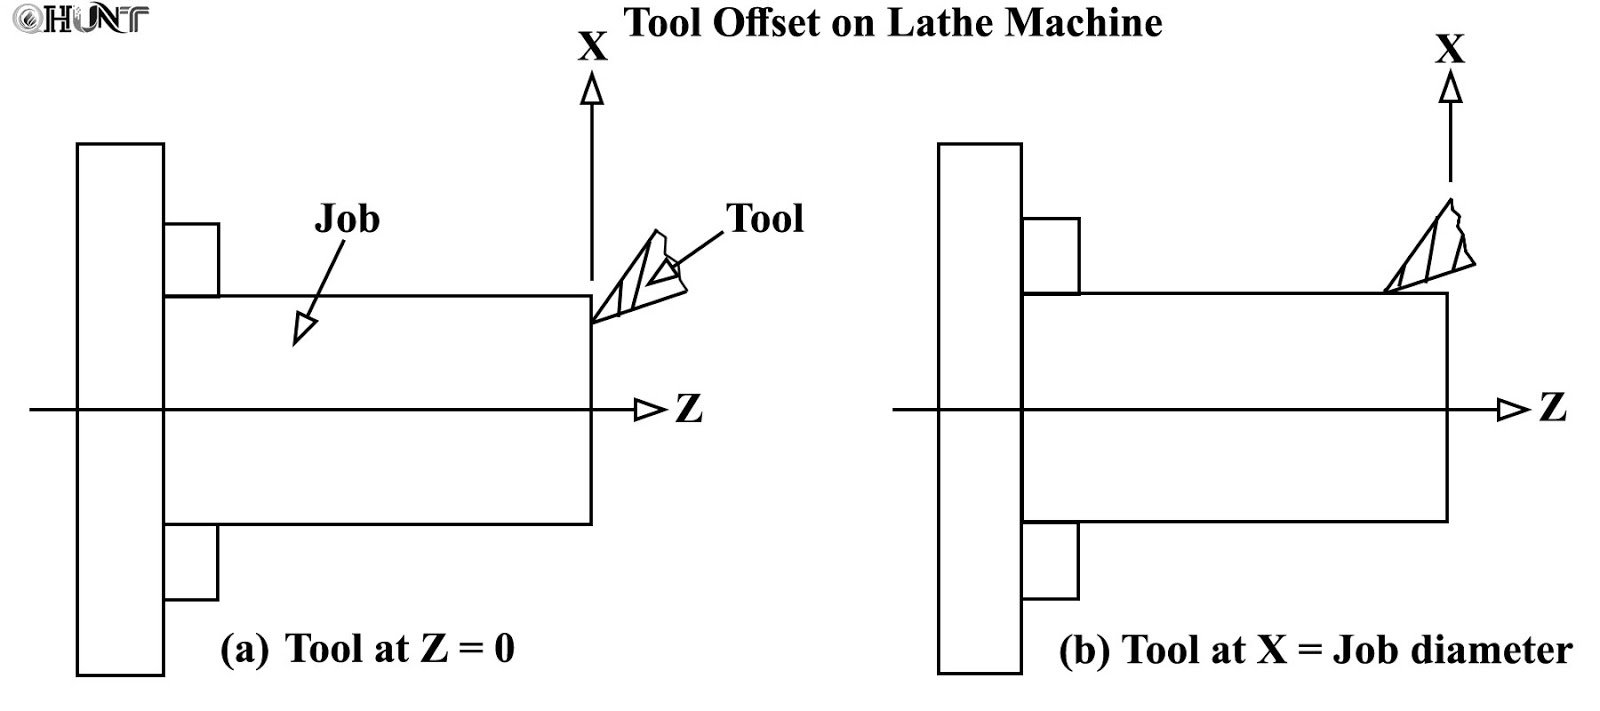 small resolution of taking tool offset on lathe machine and proving selected program